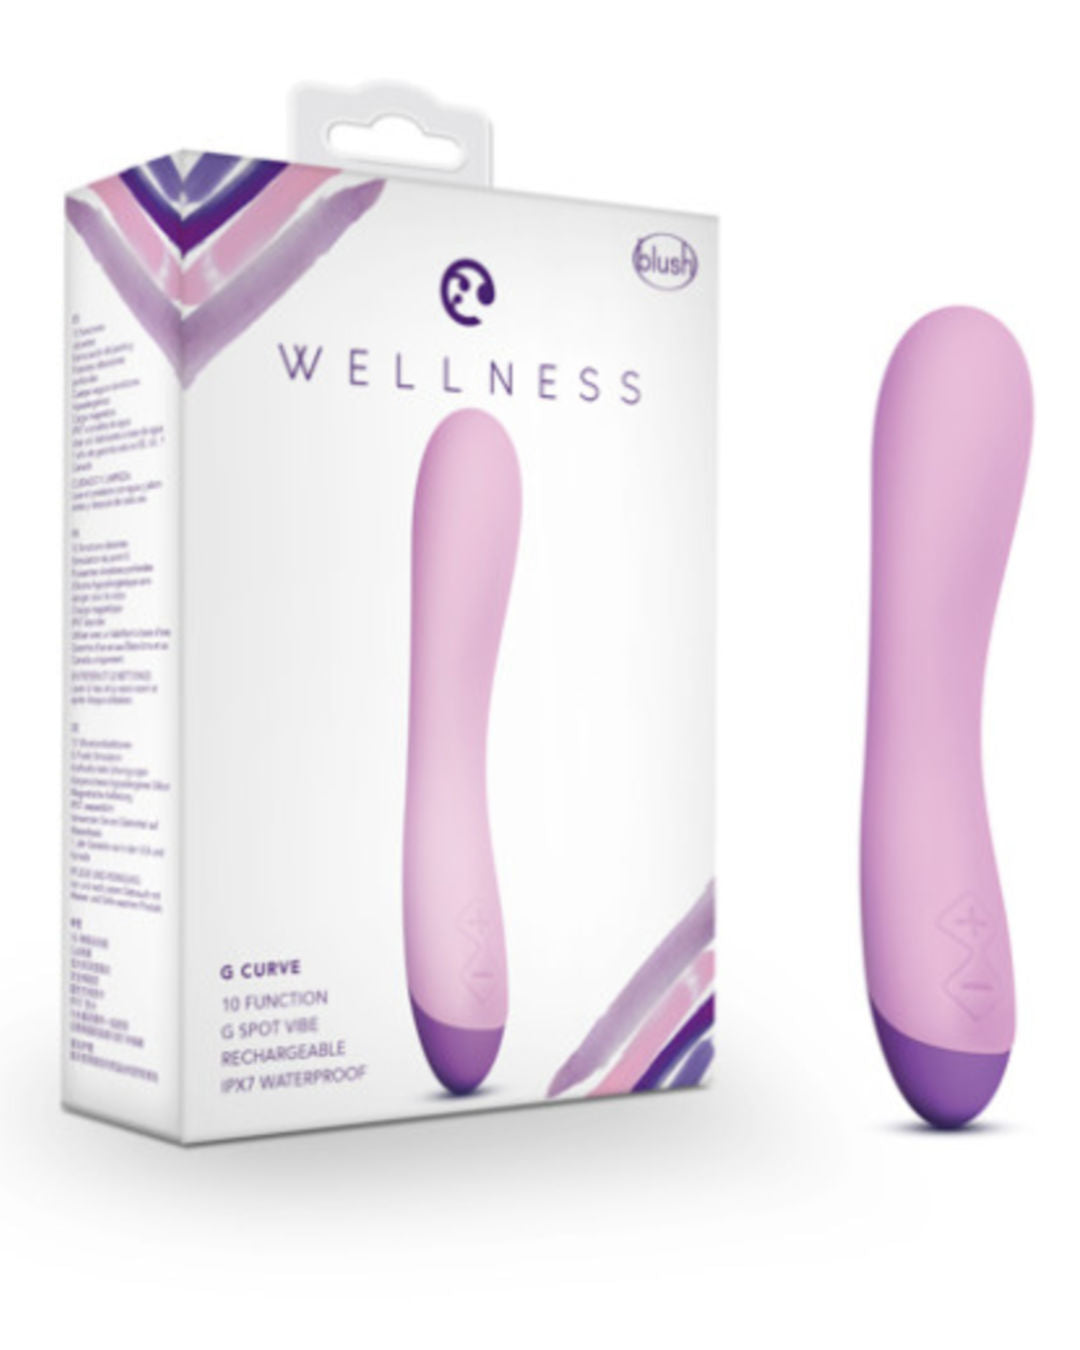 Wellness G Curve Waterproof Silicone G-Spot Vibrator - Purple with box